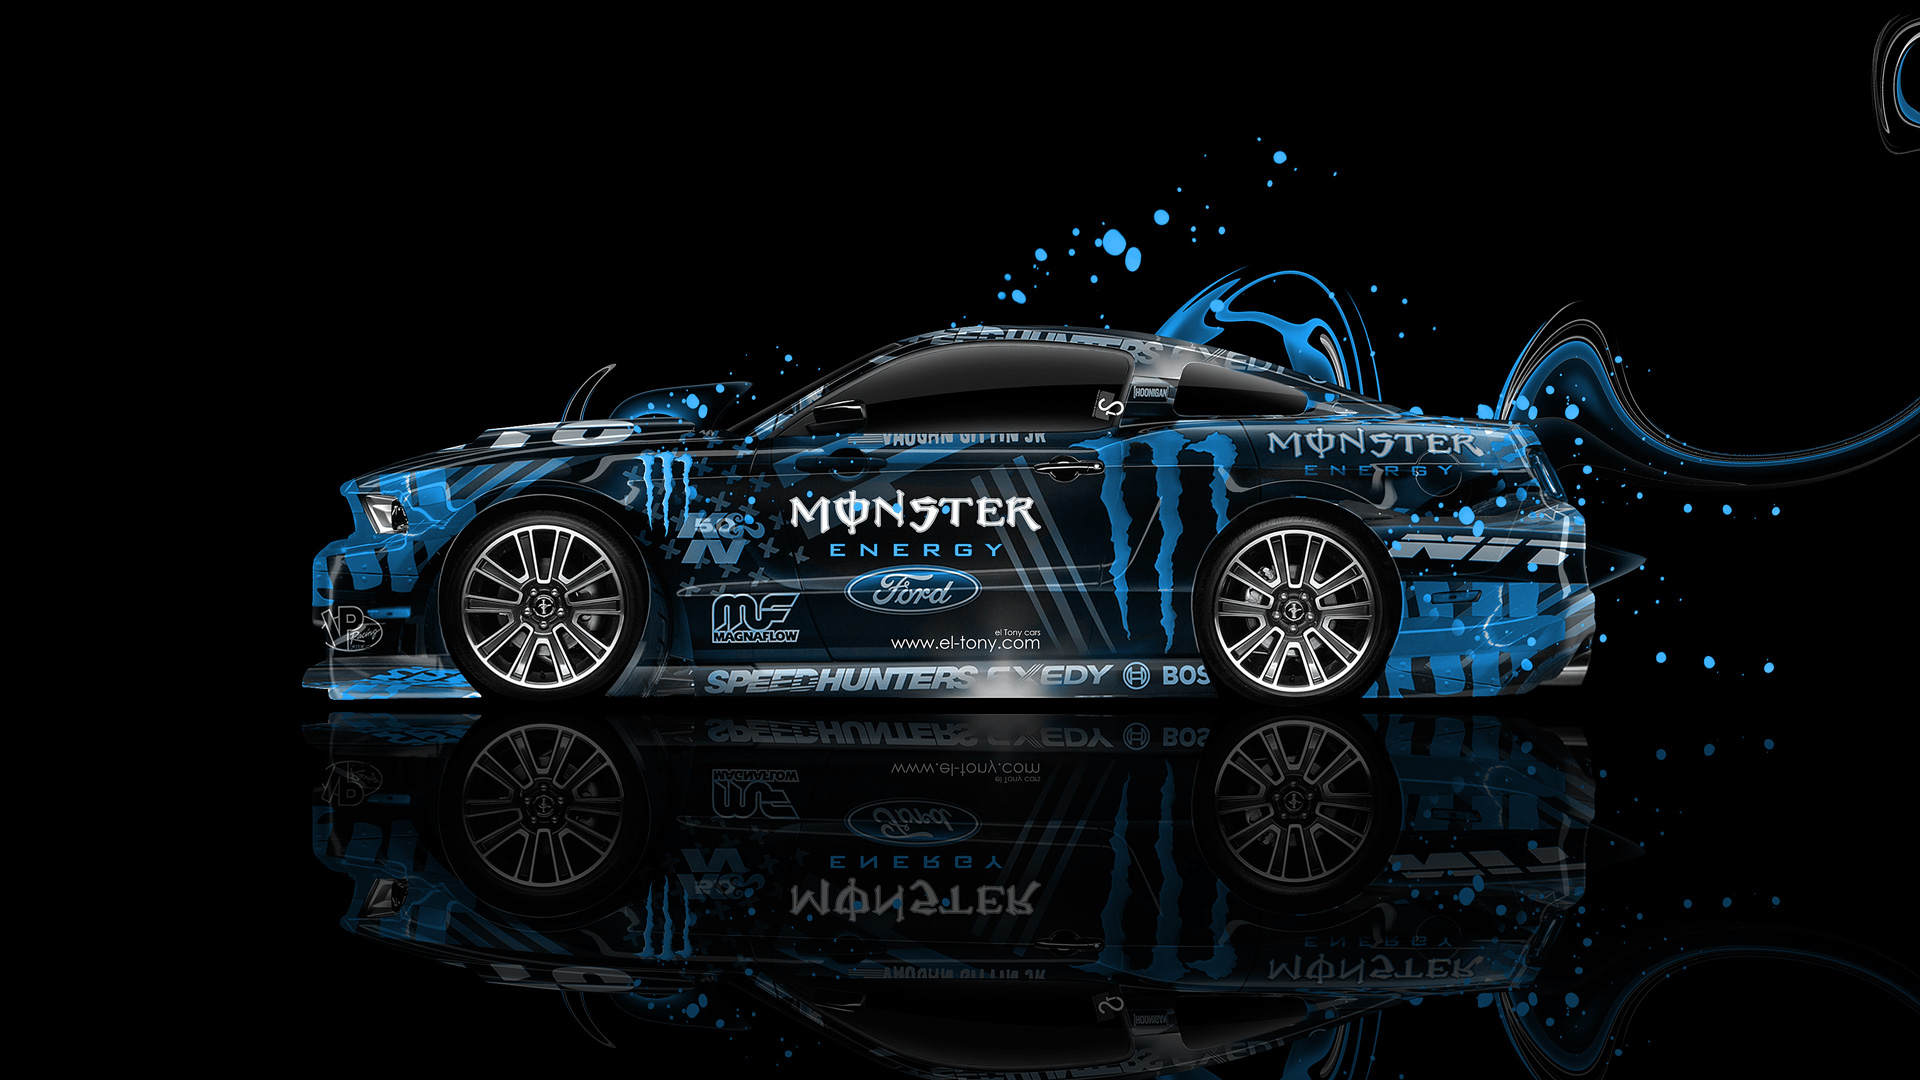 Muscle Car Wallpaper Backgrounds Monster Energy Ford Mustang Gt Side Plastic Car 2014 El Tony